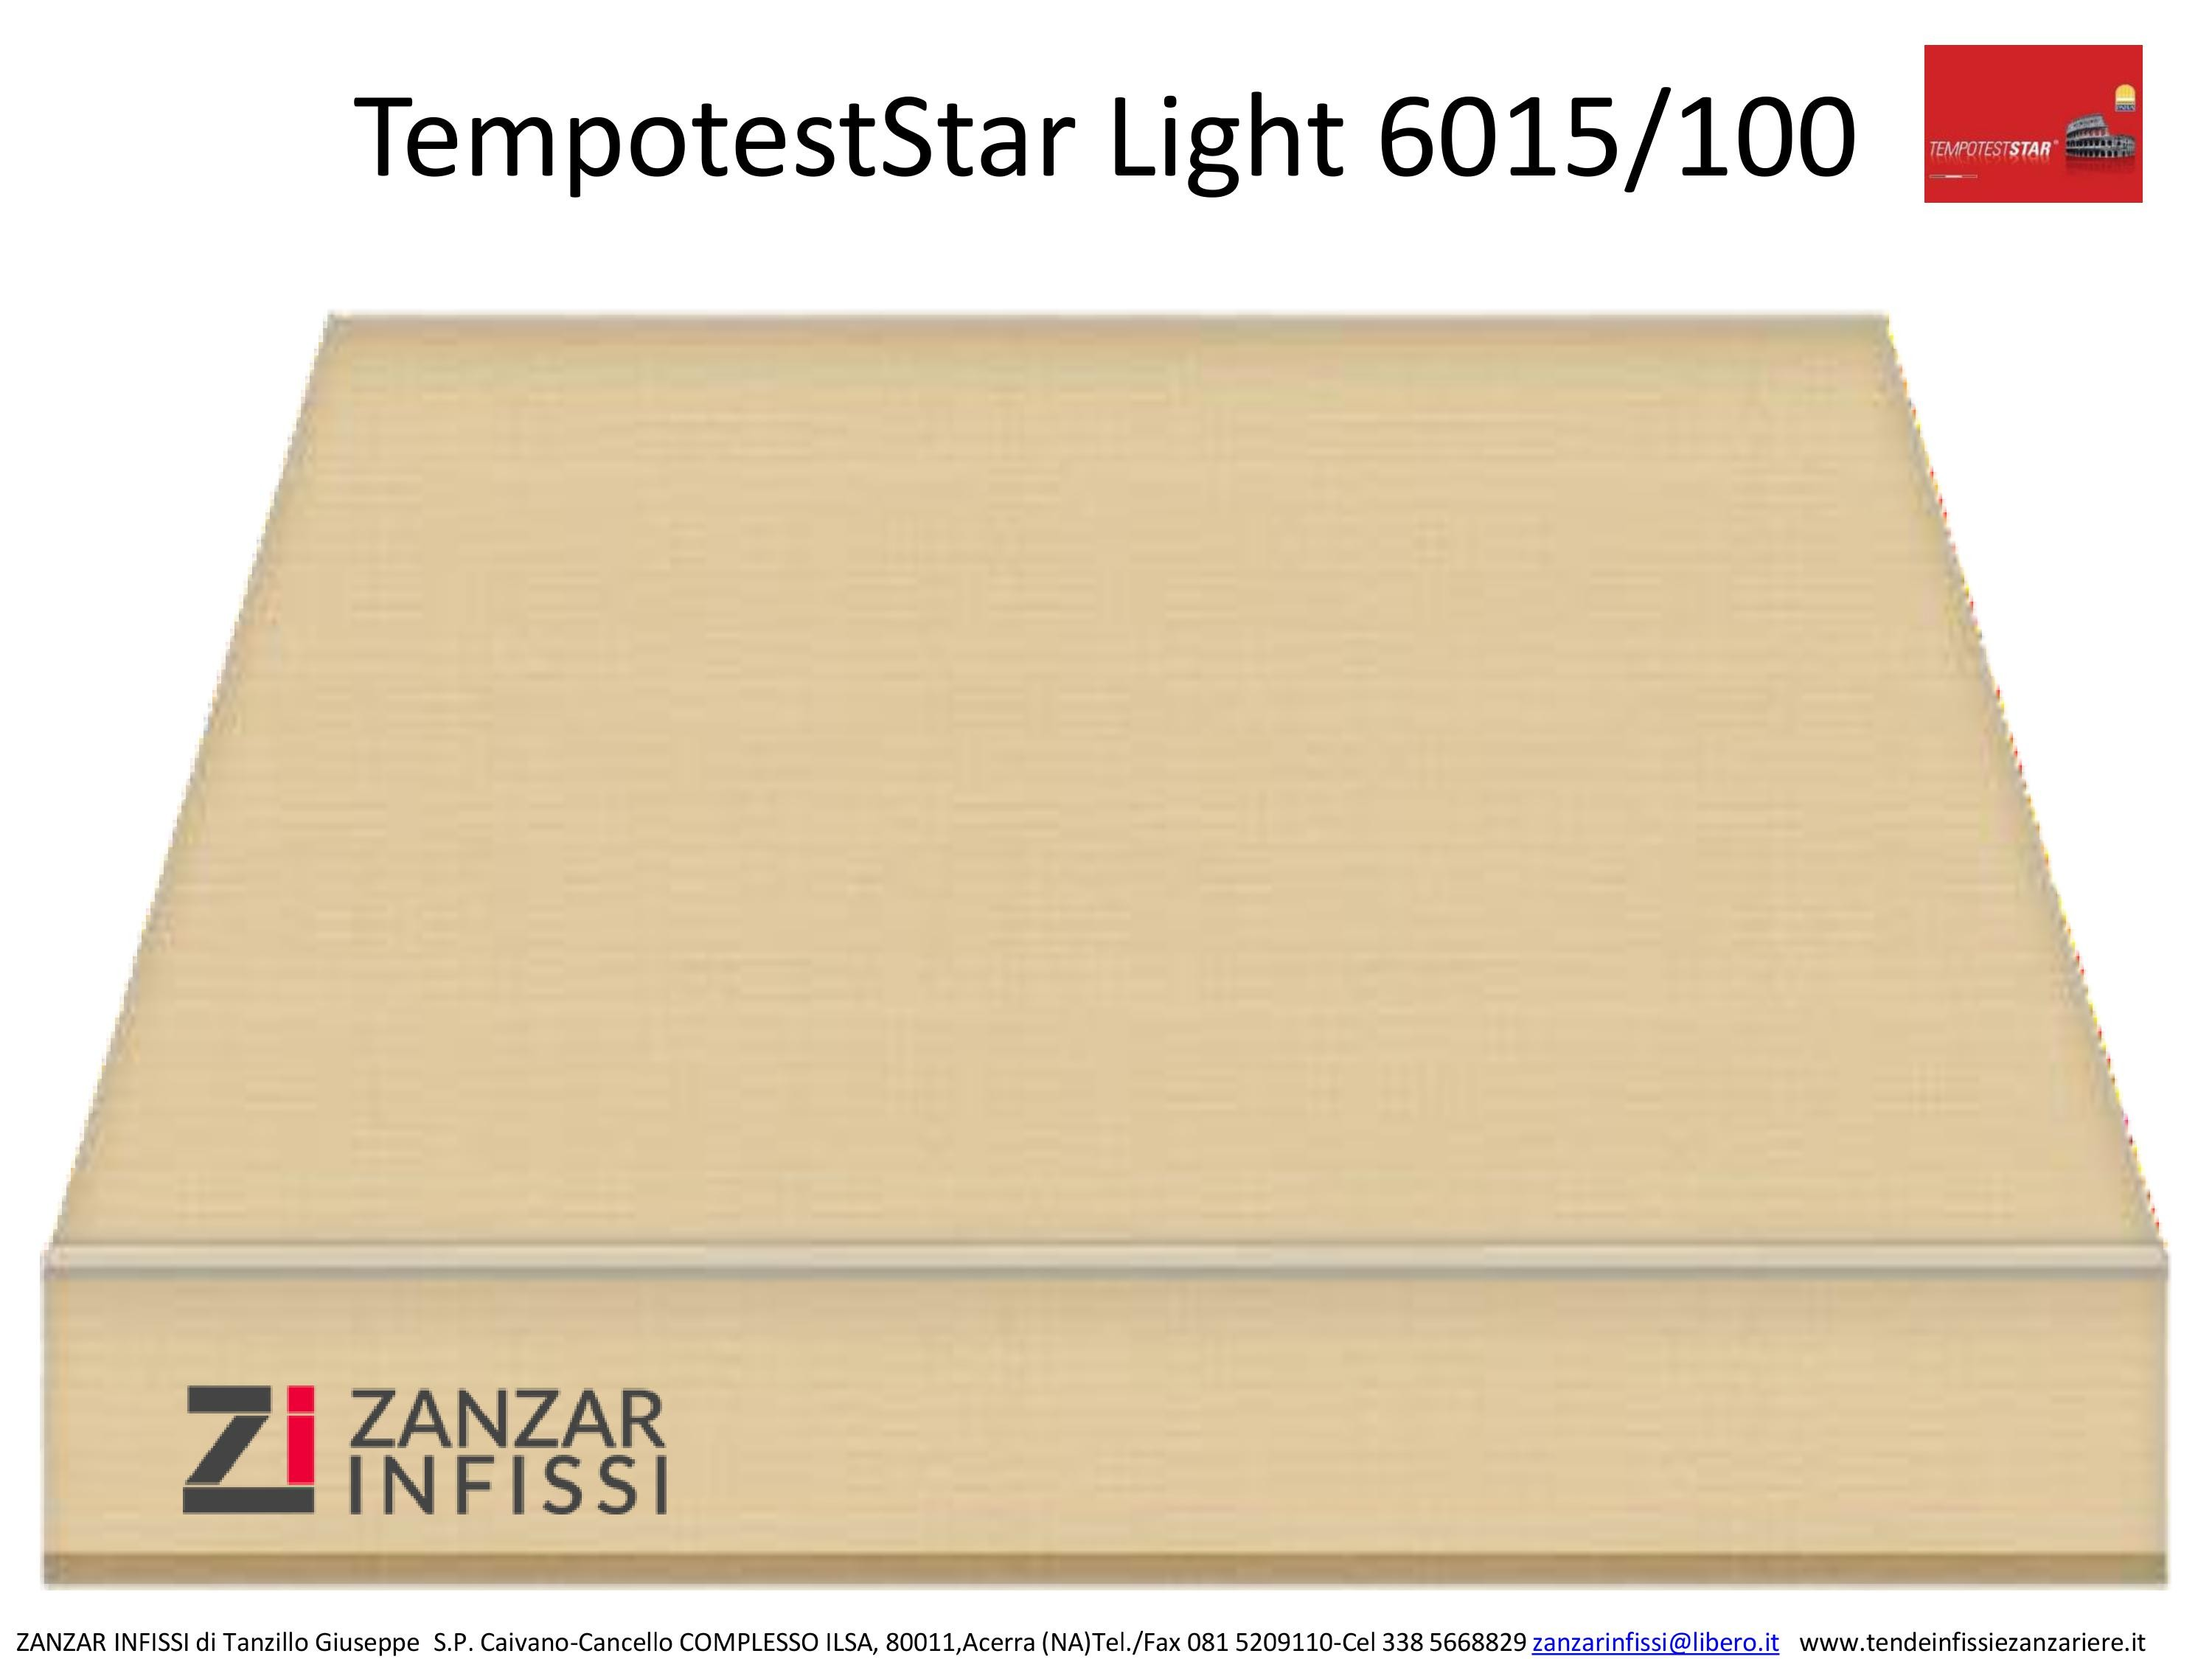 Tempotest star light 6015/100